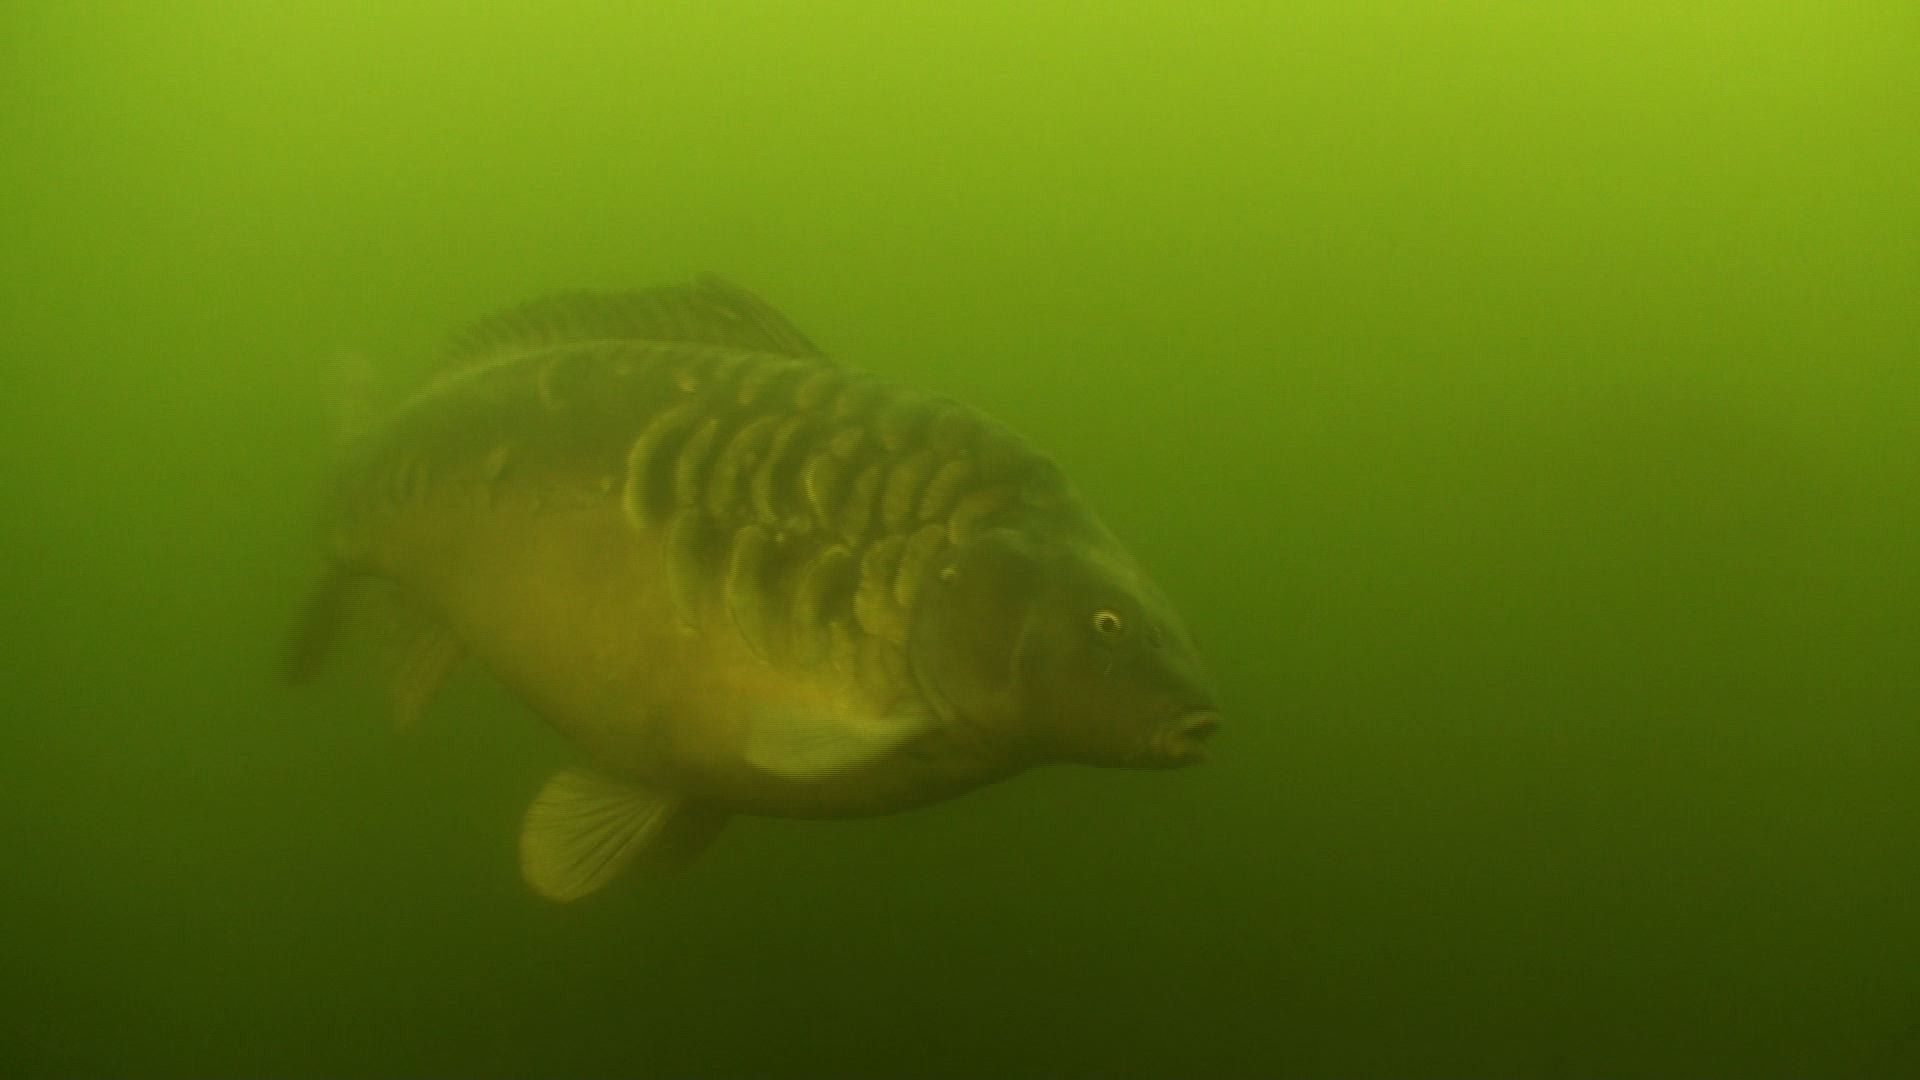 Image Detail For Enjoy This Beautiful Full Hd Carp Wallpaper With A Green Background Fish Wallpaper Common Carp Carp Fish